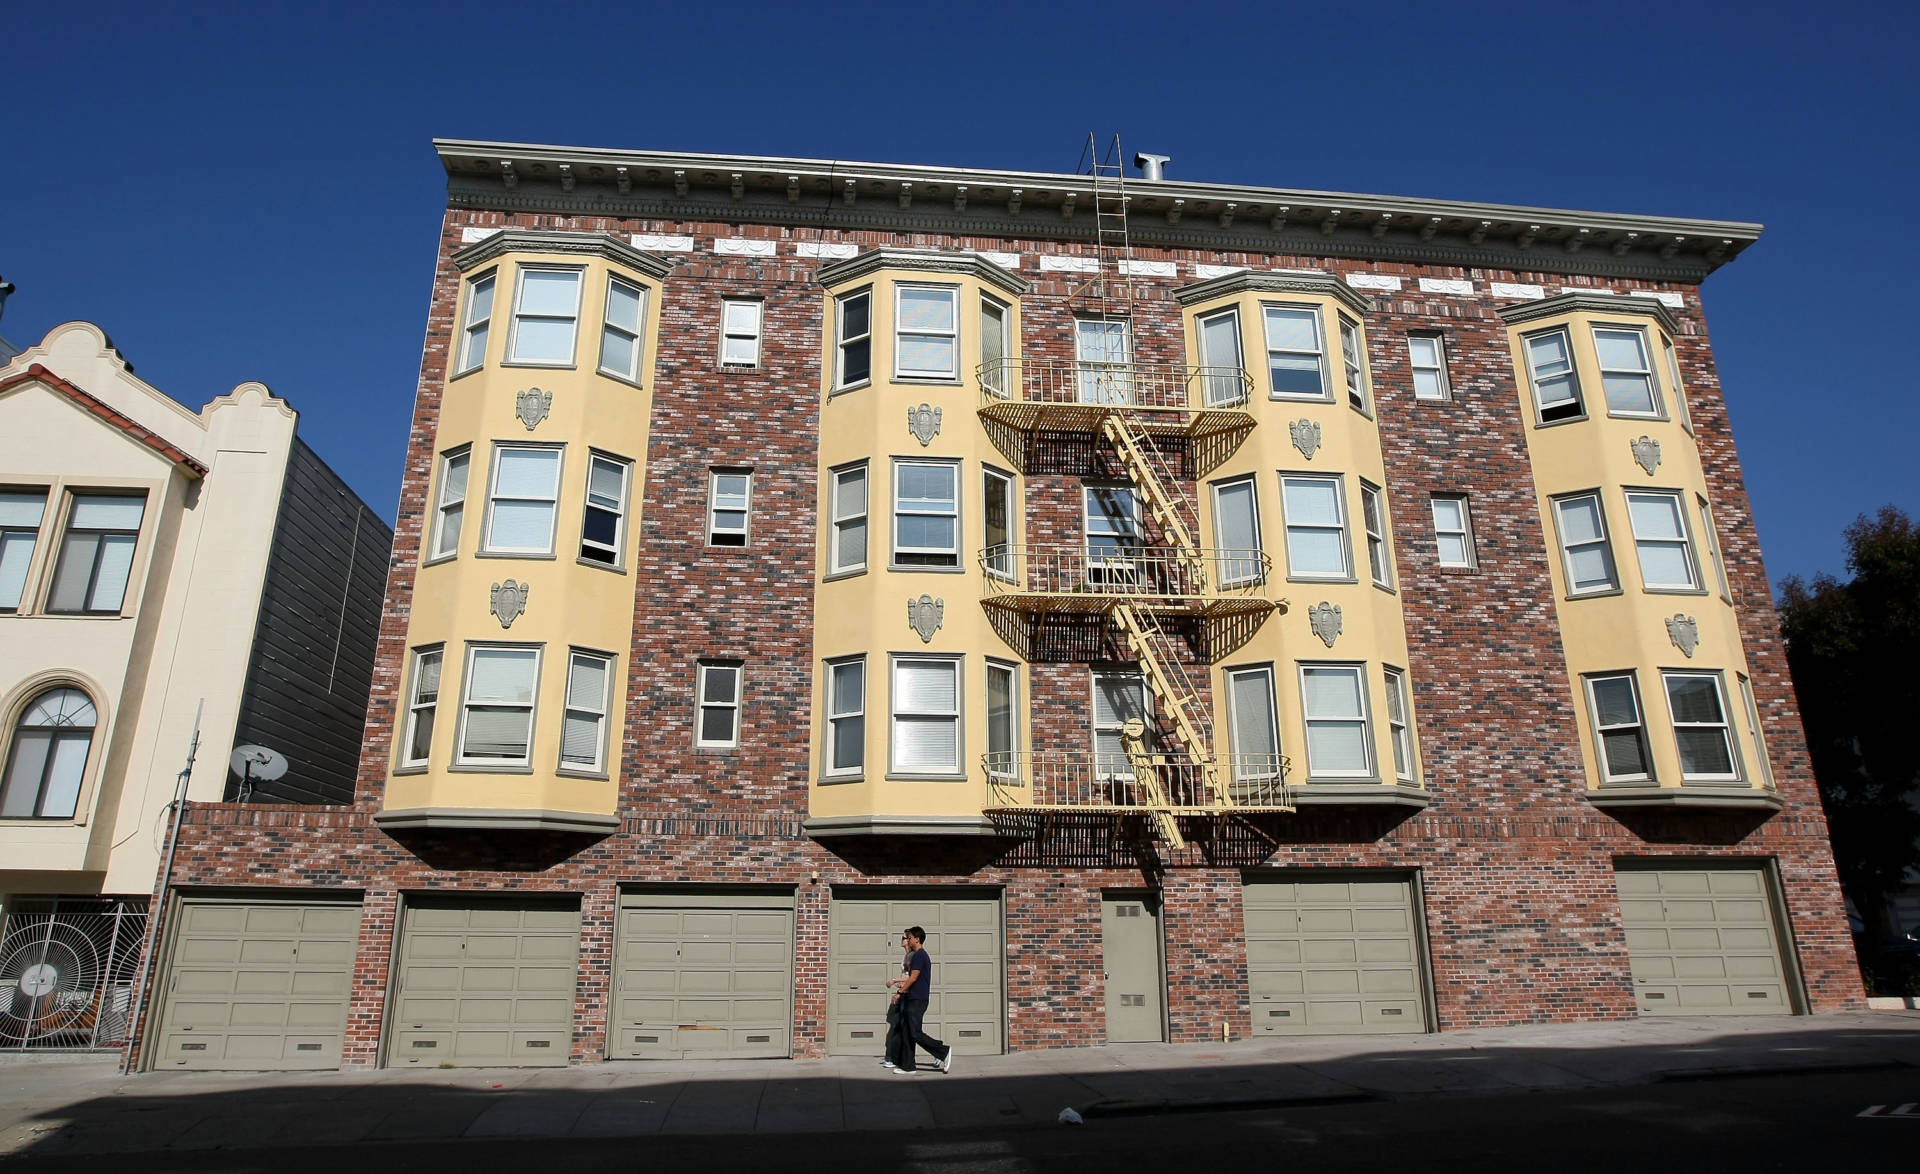 Thousands of This Type of Building Still at Risk of Collapse in Bay Area Earthquake